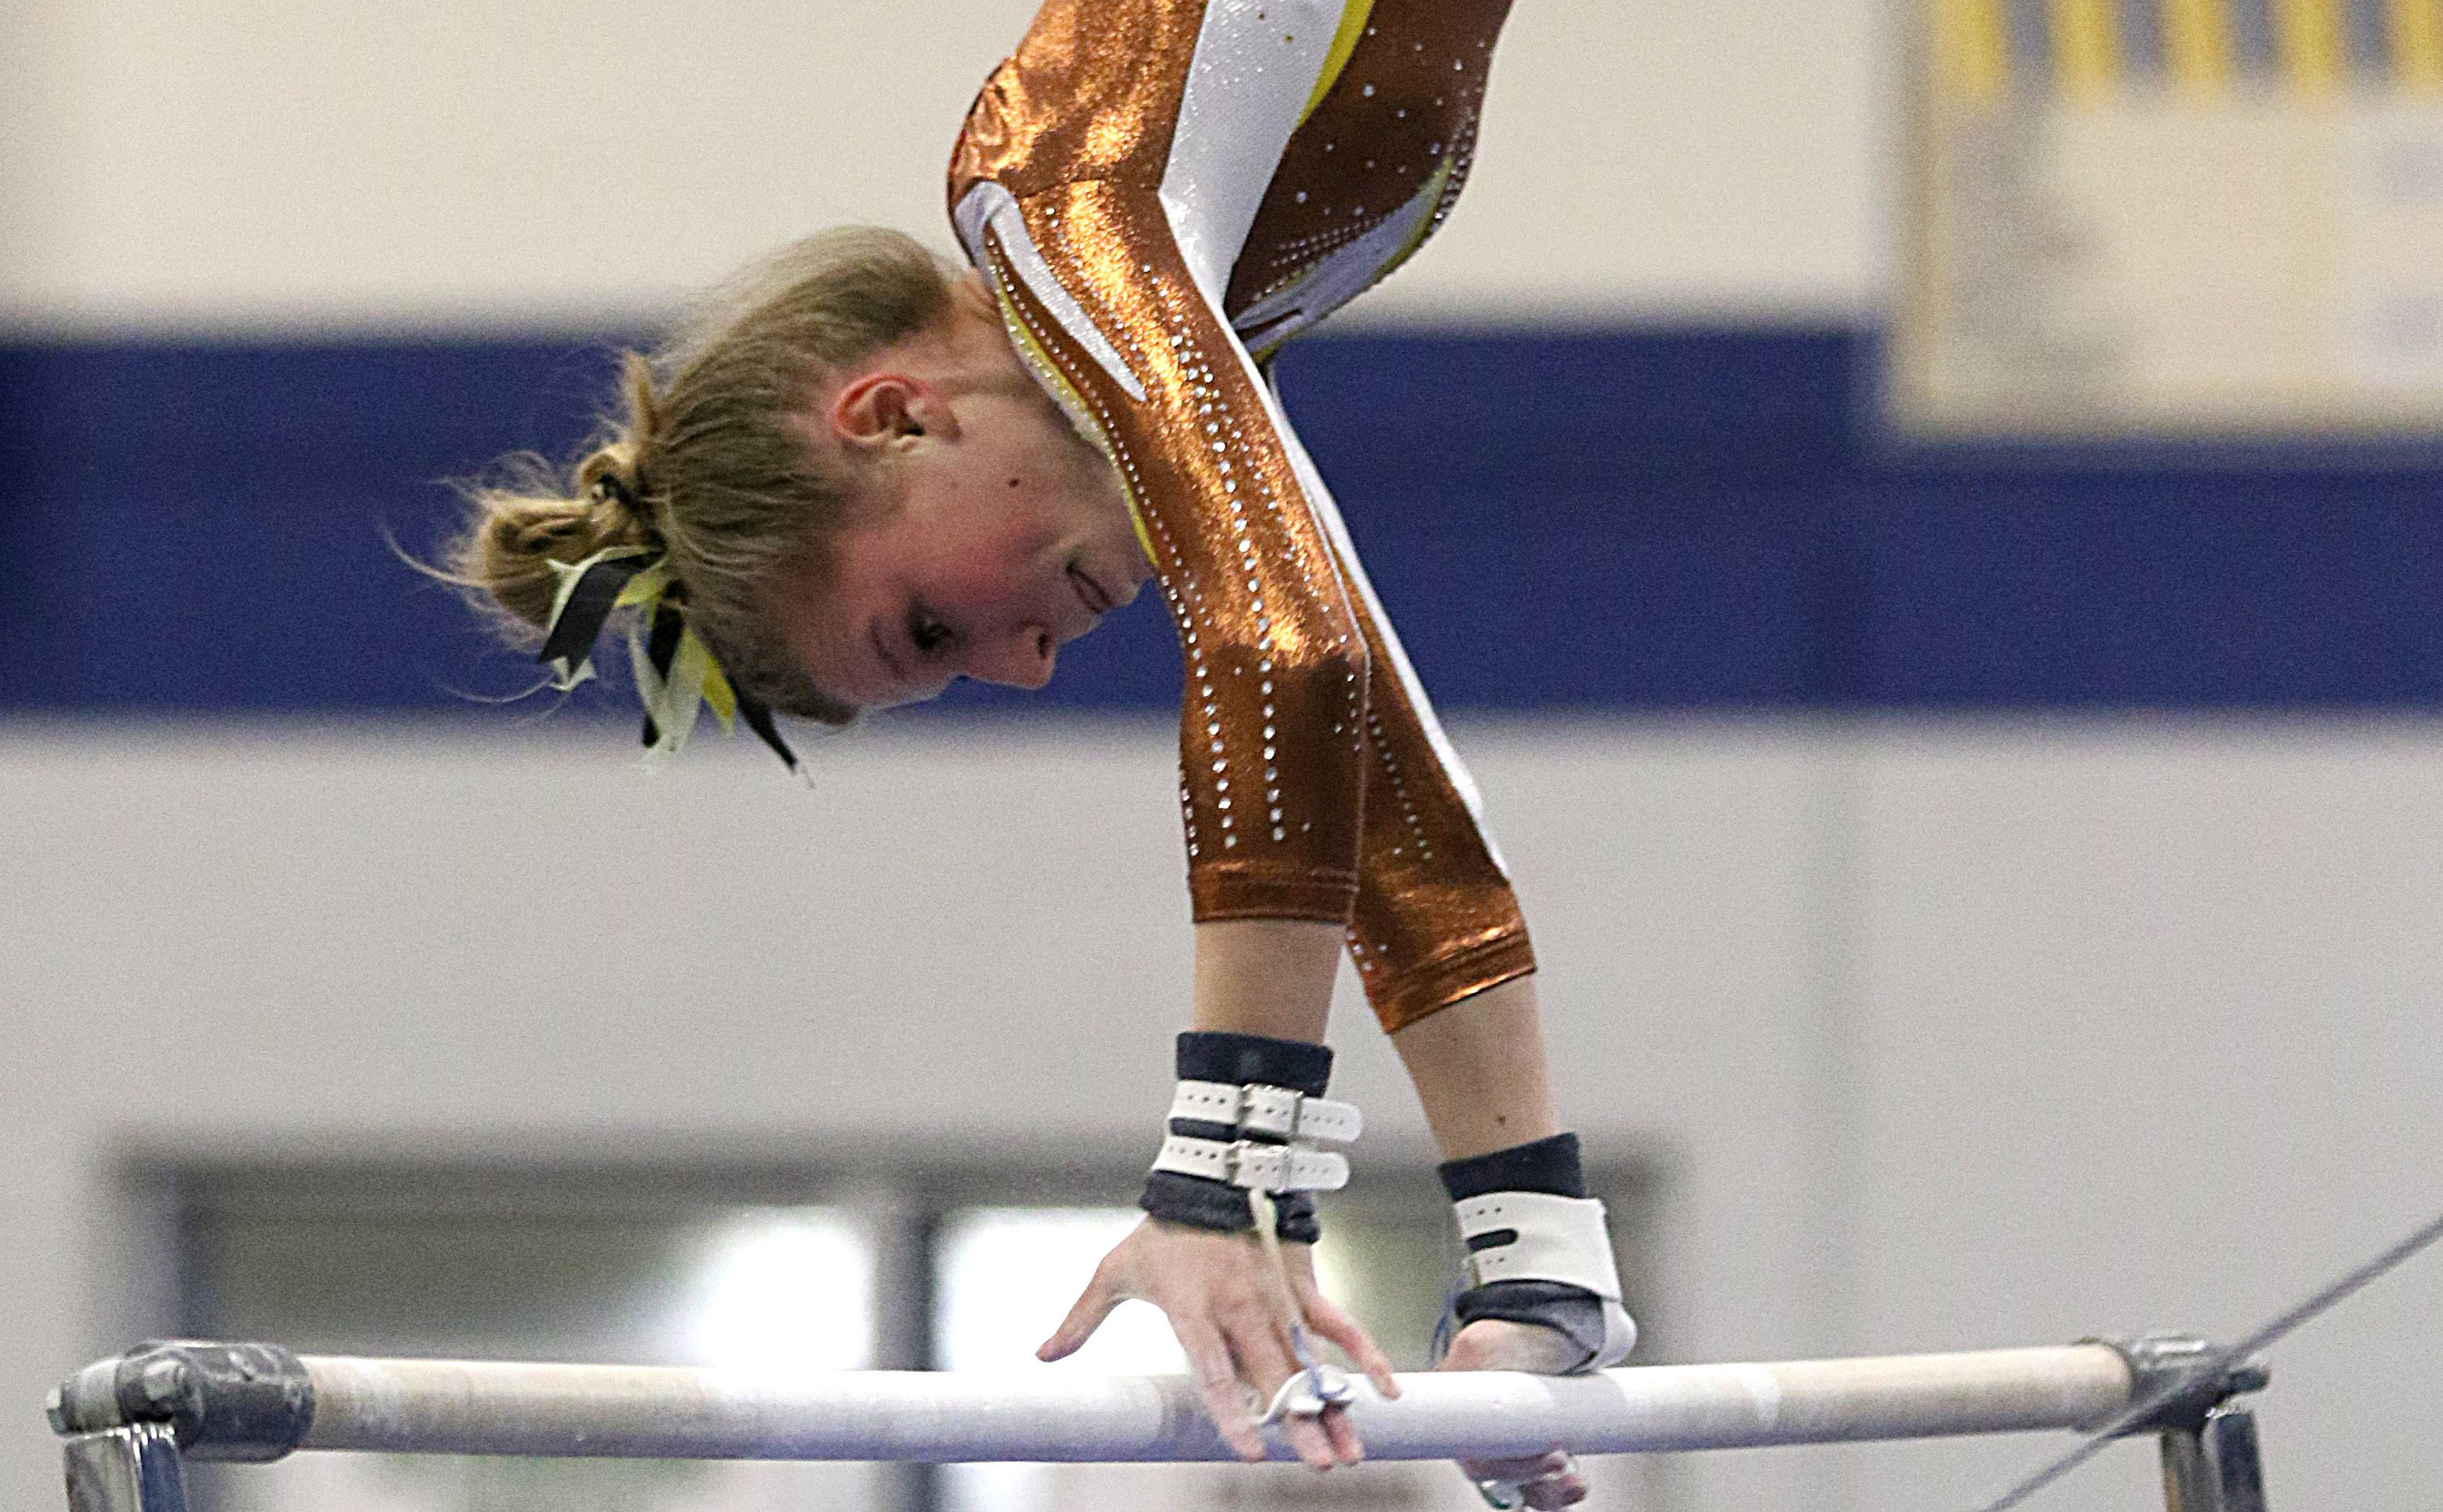 Carmel's Lyndsey Basara performs on the uneven parallel bars during regional gymnastics action at Wheeling on Monday evening.